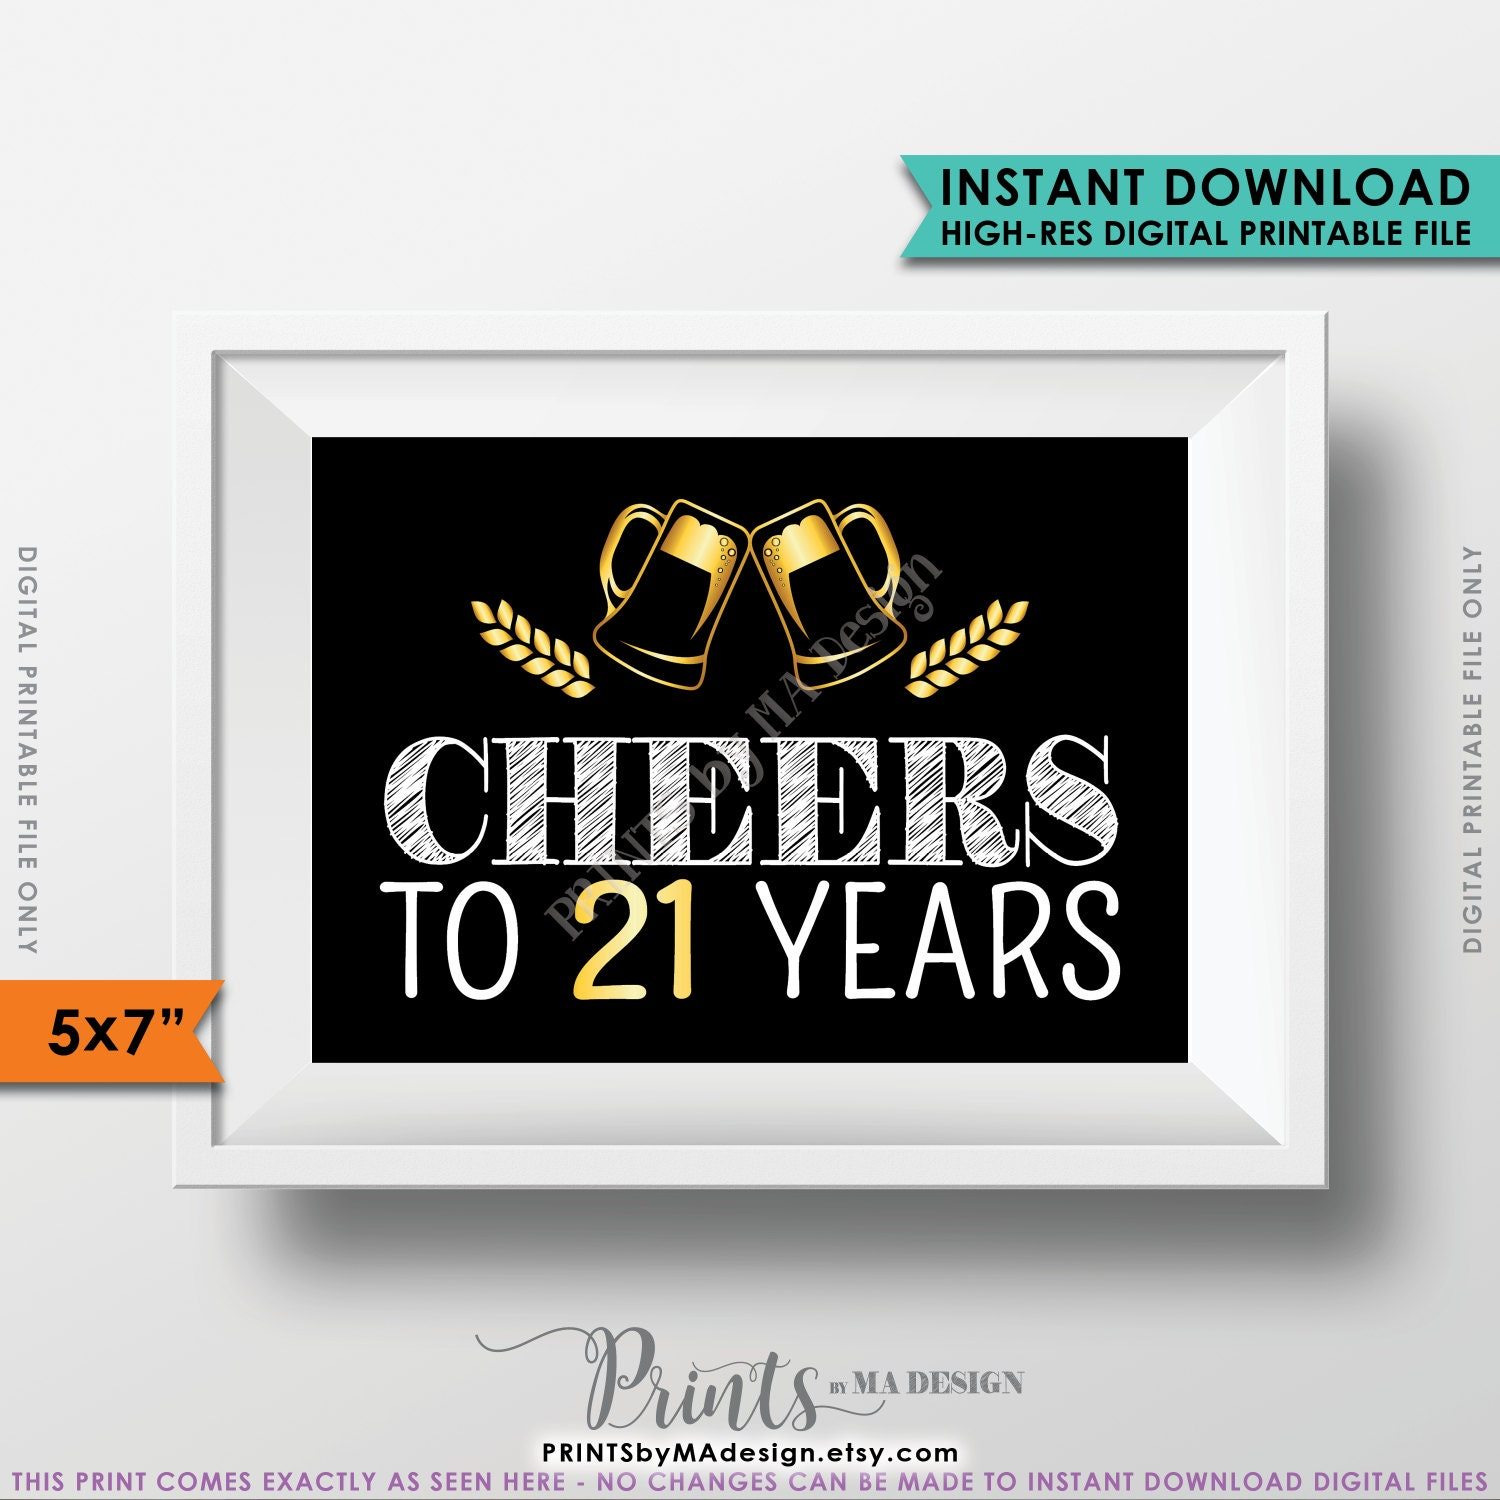 Black And Gold Anniversary 21st Birthday Party Decoration Instant Download Digital Printable File Gallery Photo